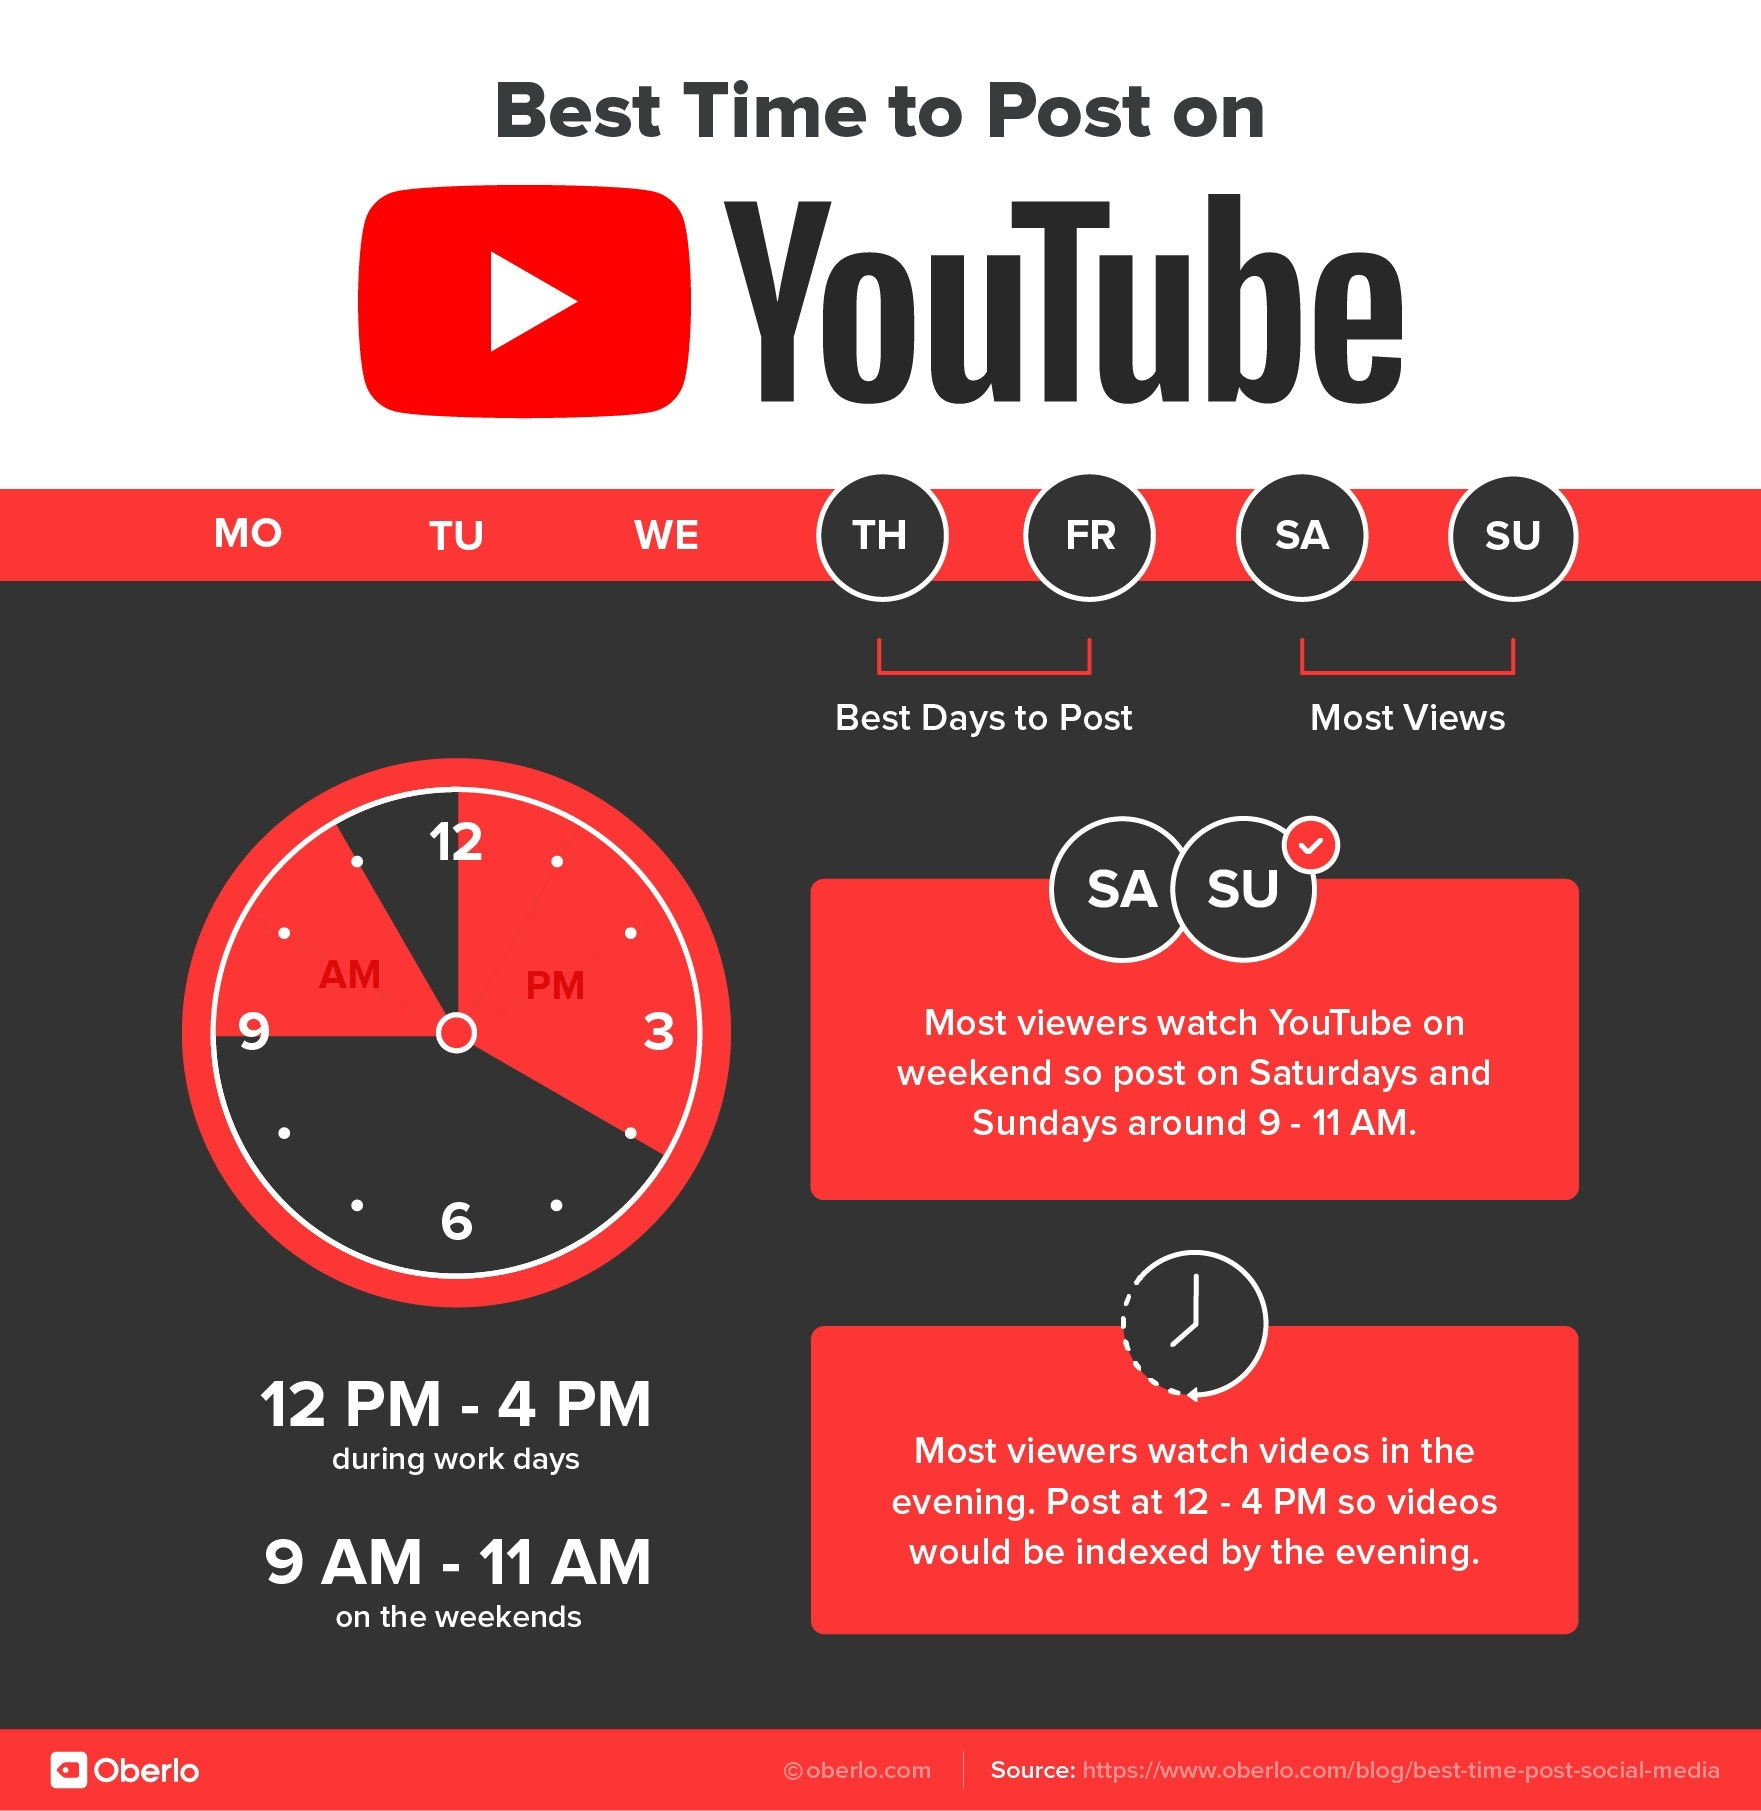 Best time to post on Youtube